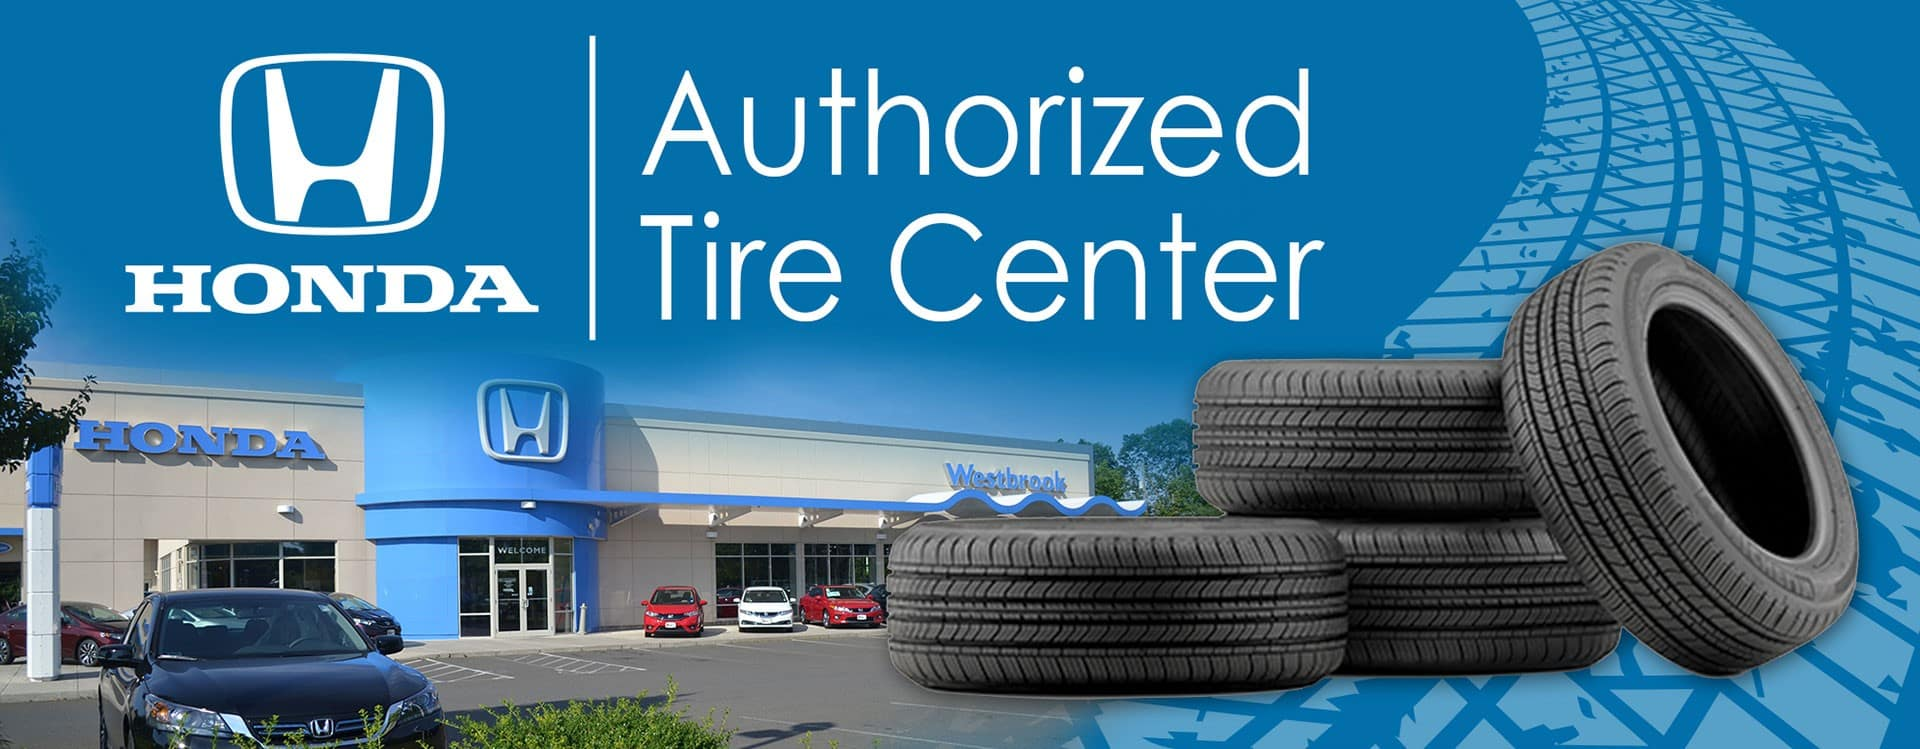 WBH Tire banner